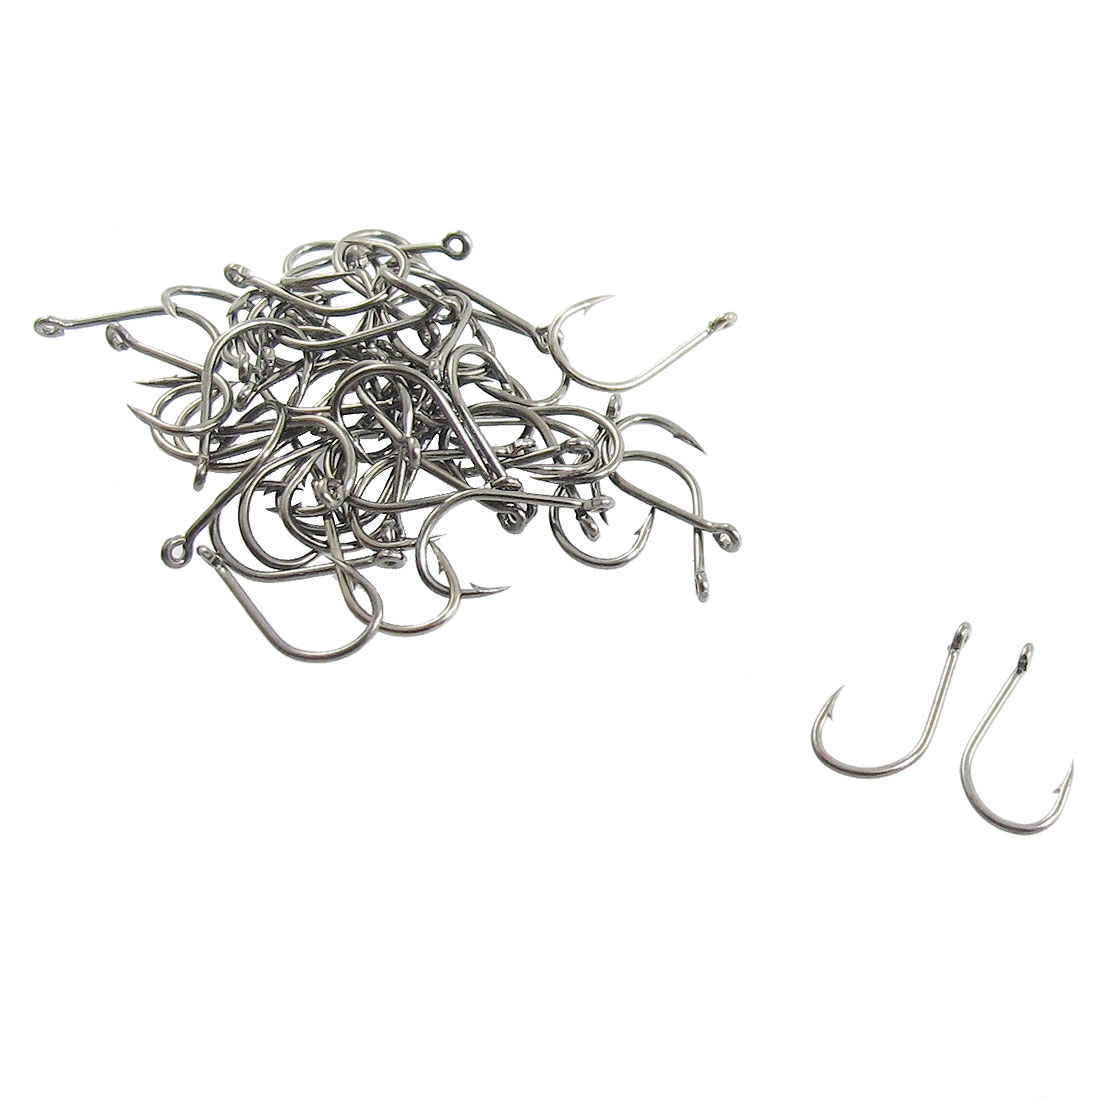 50 Pcs Black Metal Eyeless Barbed Fishhook Fishing Tool 1#